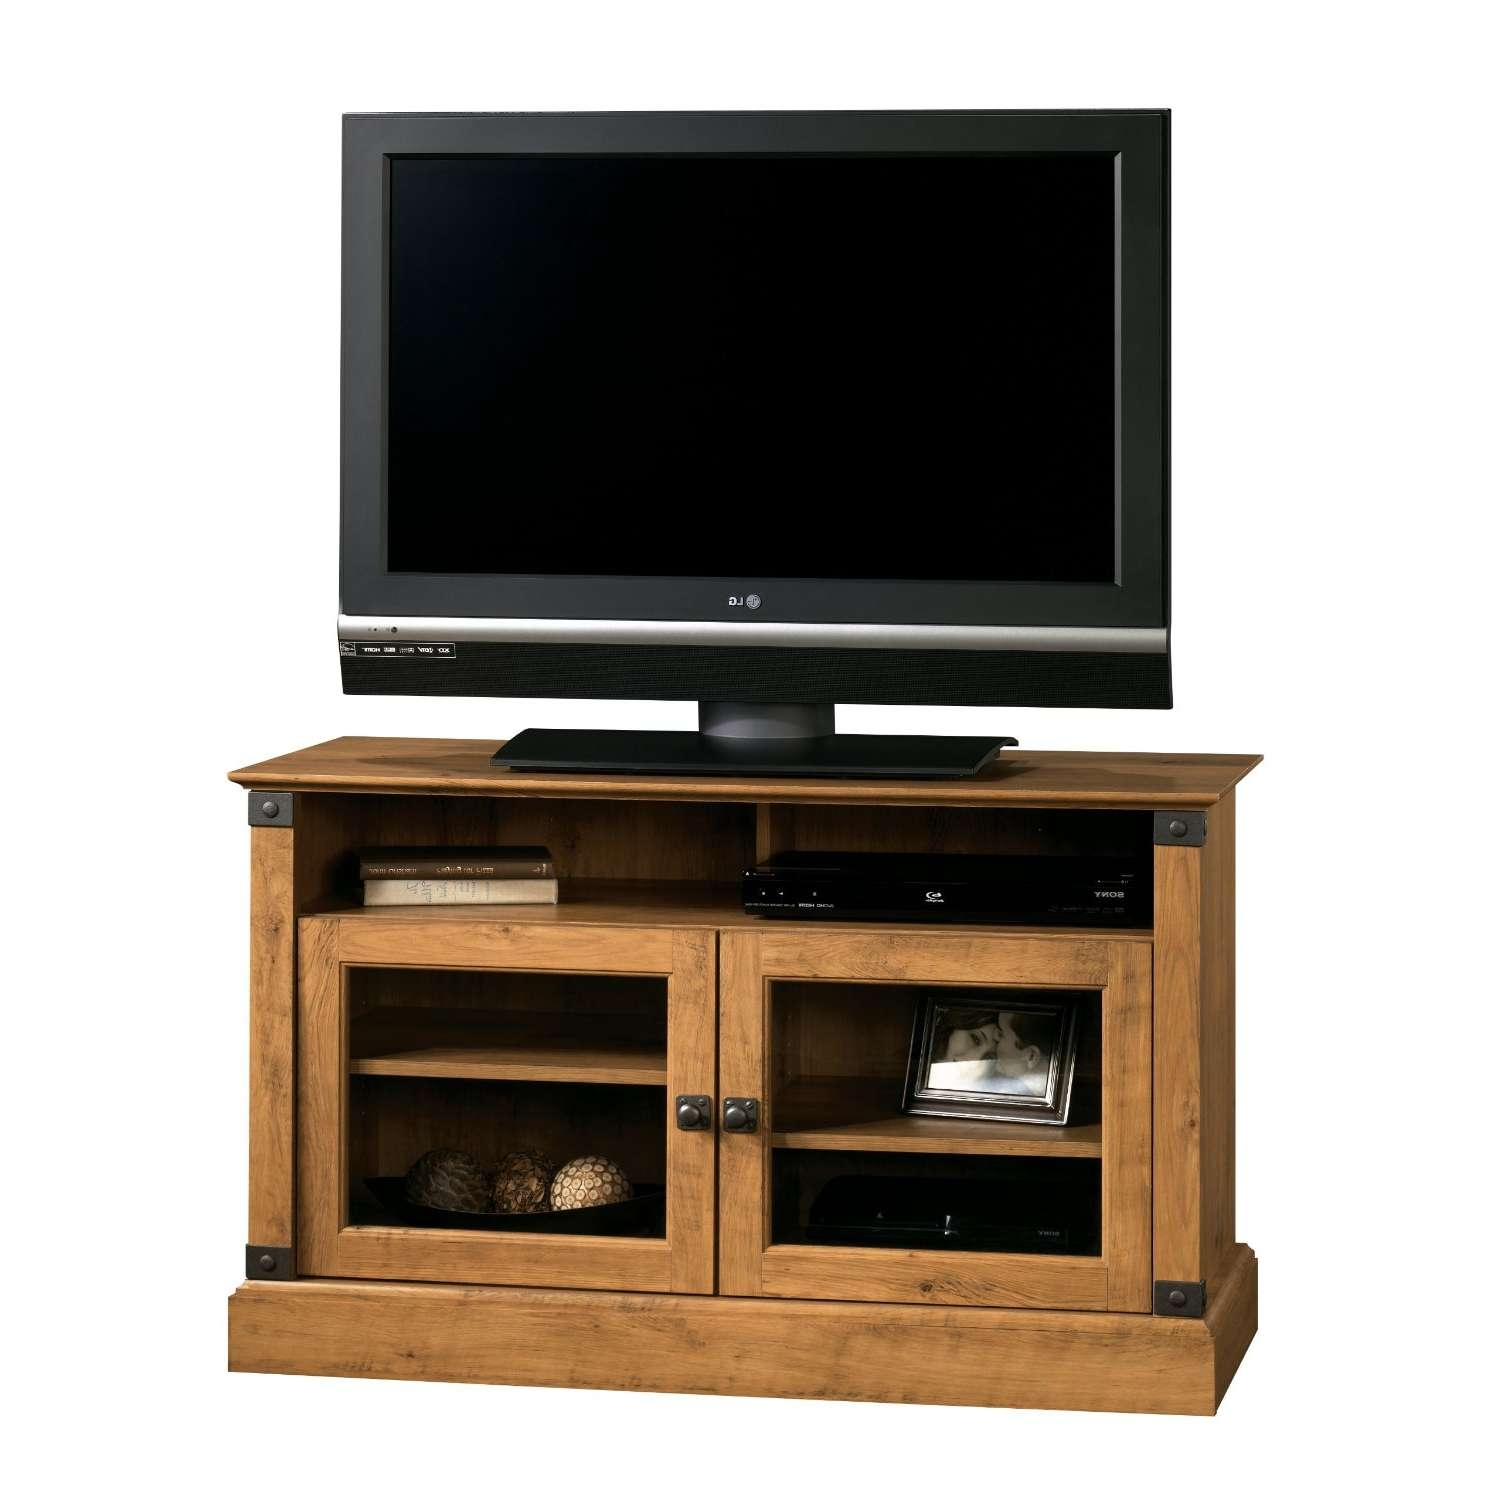 Furniture: Reclaimed Wood Tv Stand With Sliding Doors For Living Throughout Wooden Tv Stands With Doors (View 5 of 15)